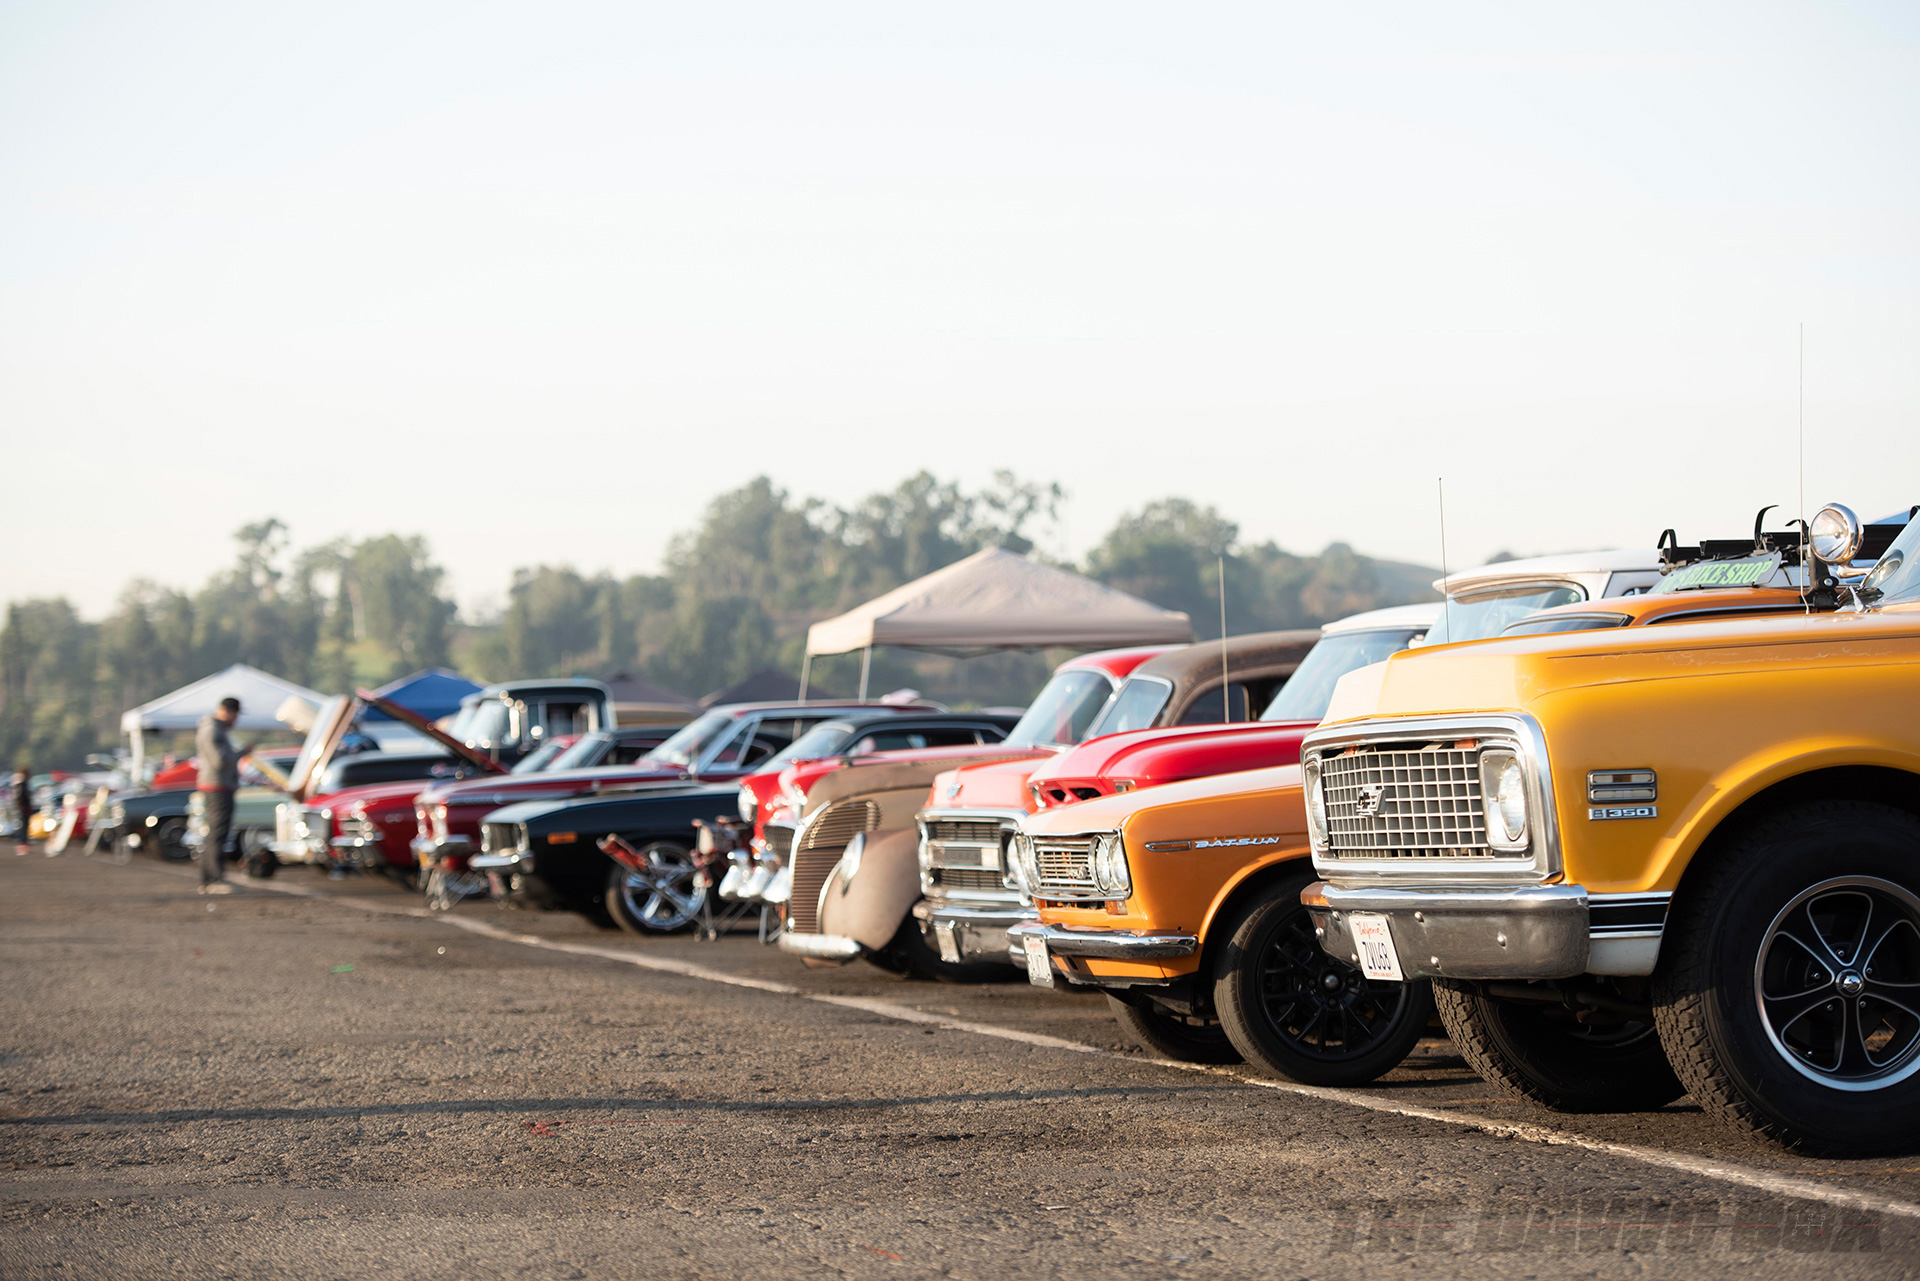 a line of classic chevys. datsuns, fords, and more on display at the In-N-Out Hot Rod 70th Celebration